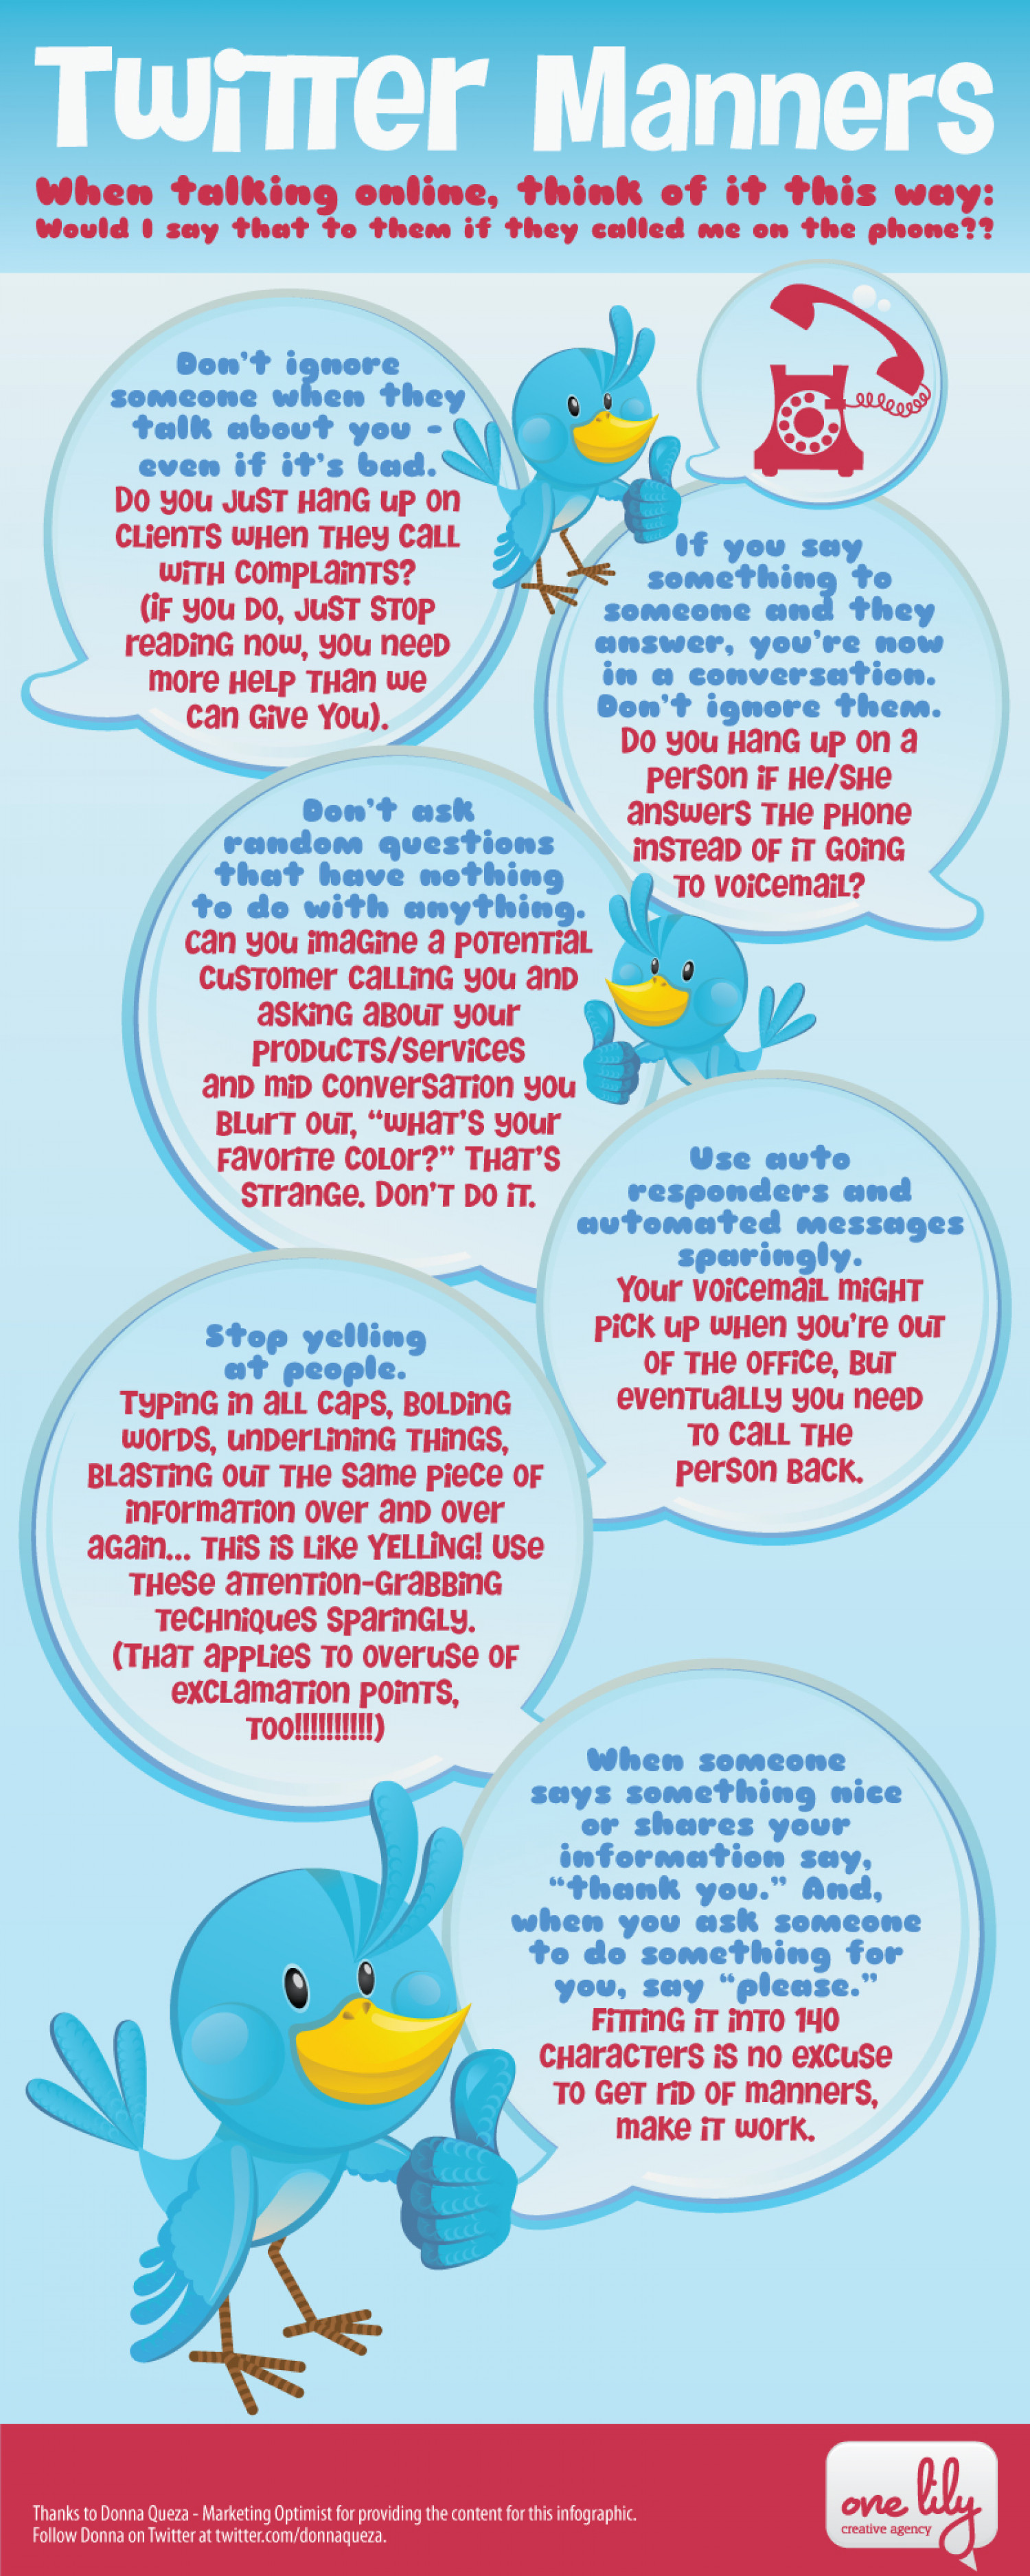 Twitter Manners Infographic